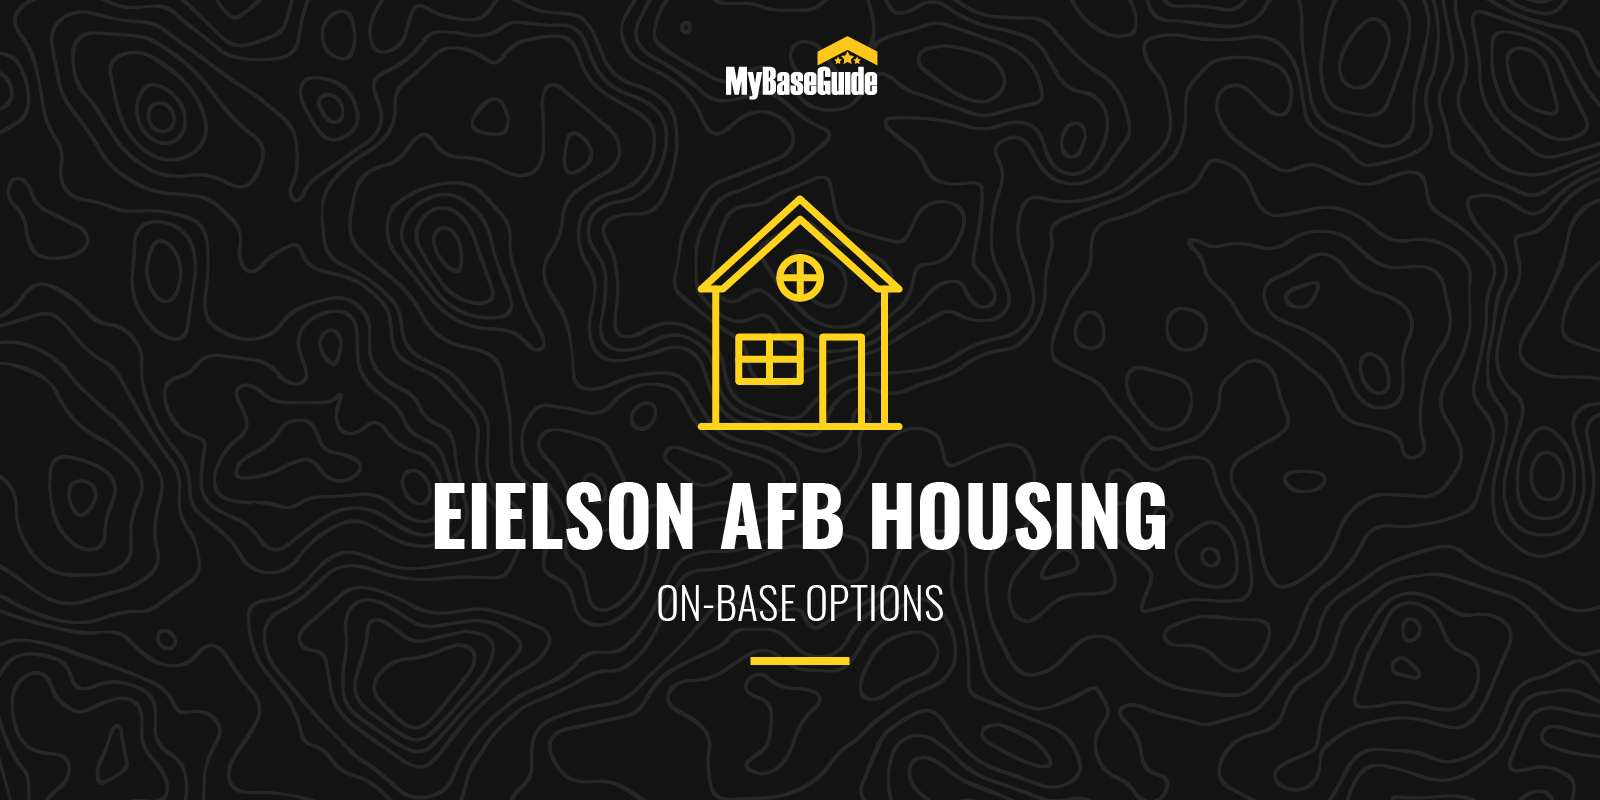 Eielson AFB Housing: On-Base Options